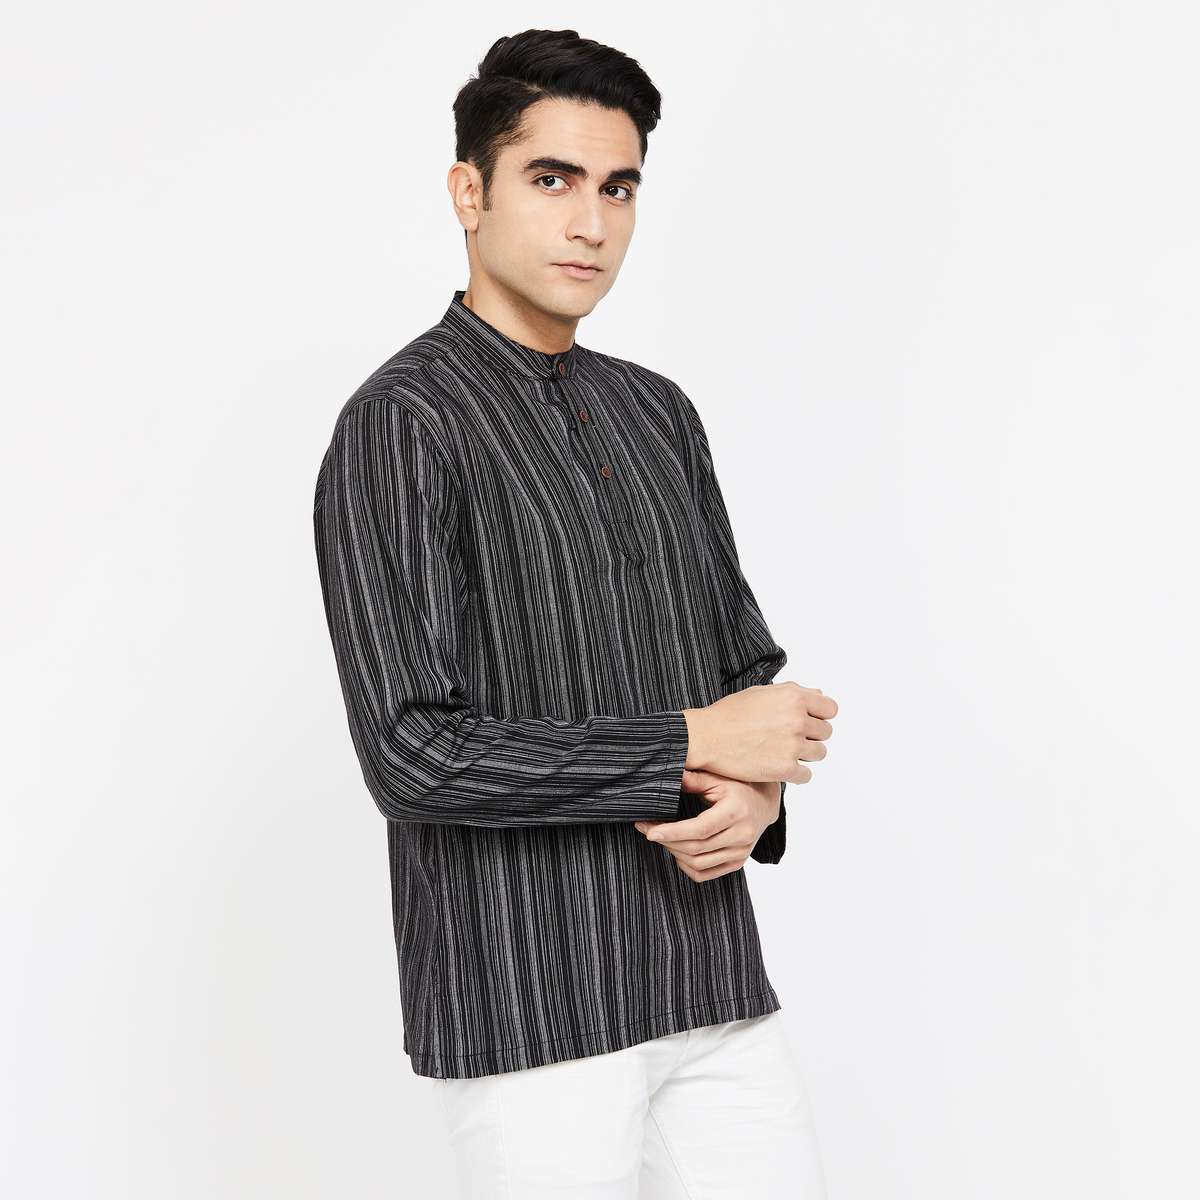 MELANGE Striped Regular Fit Short Kurta